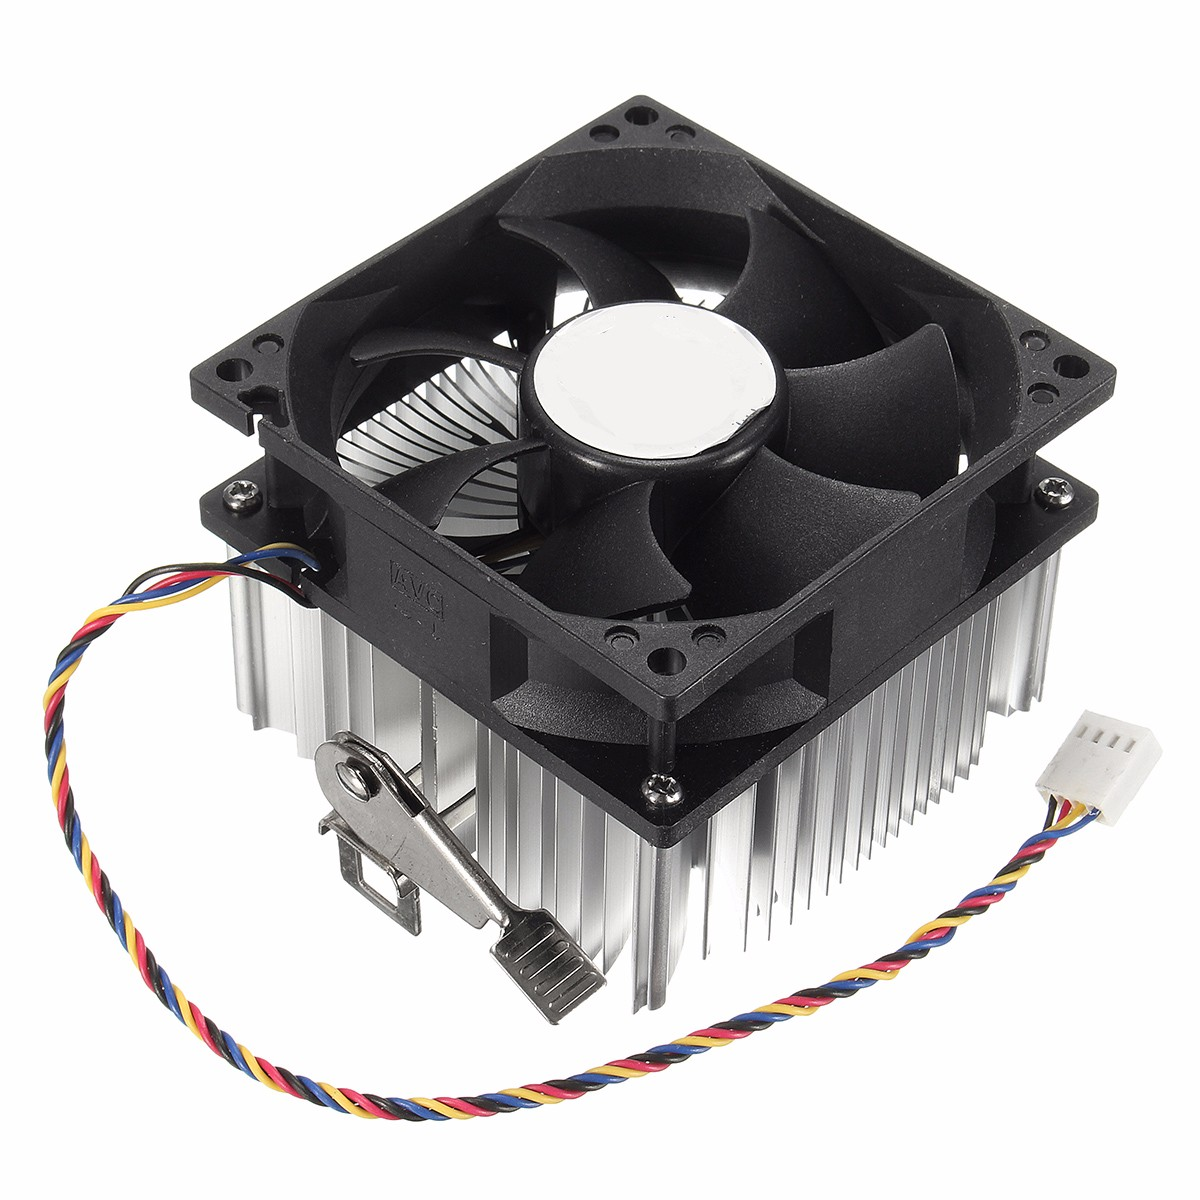 4PIN 12V Socket PWM 7 Fan Computer CPU Cooler Aluminium Heat Sink AMD Copper Core